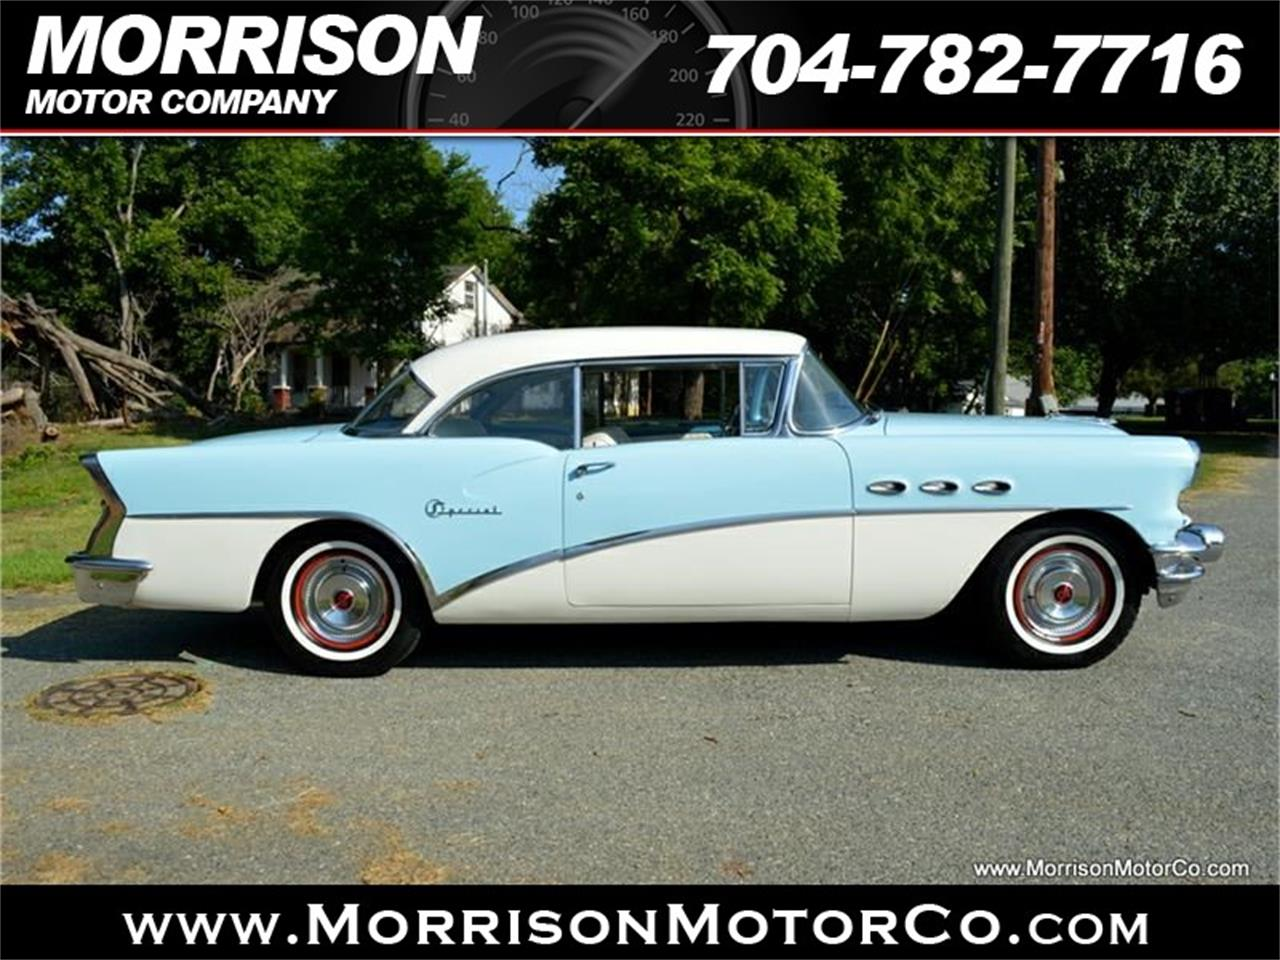 Large Picture of '56 Buick Special Riviera located in North Carolina - $22,900.00 Offered by Morrison Motor Company - M8P8